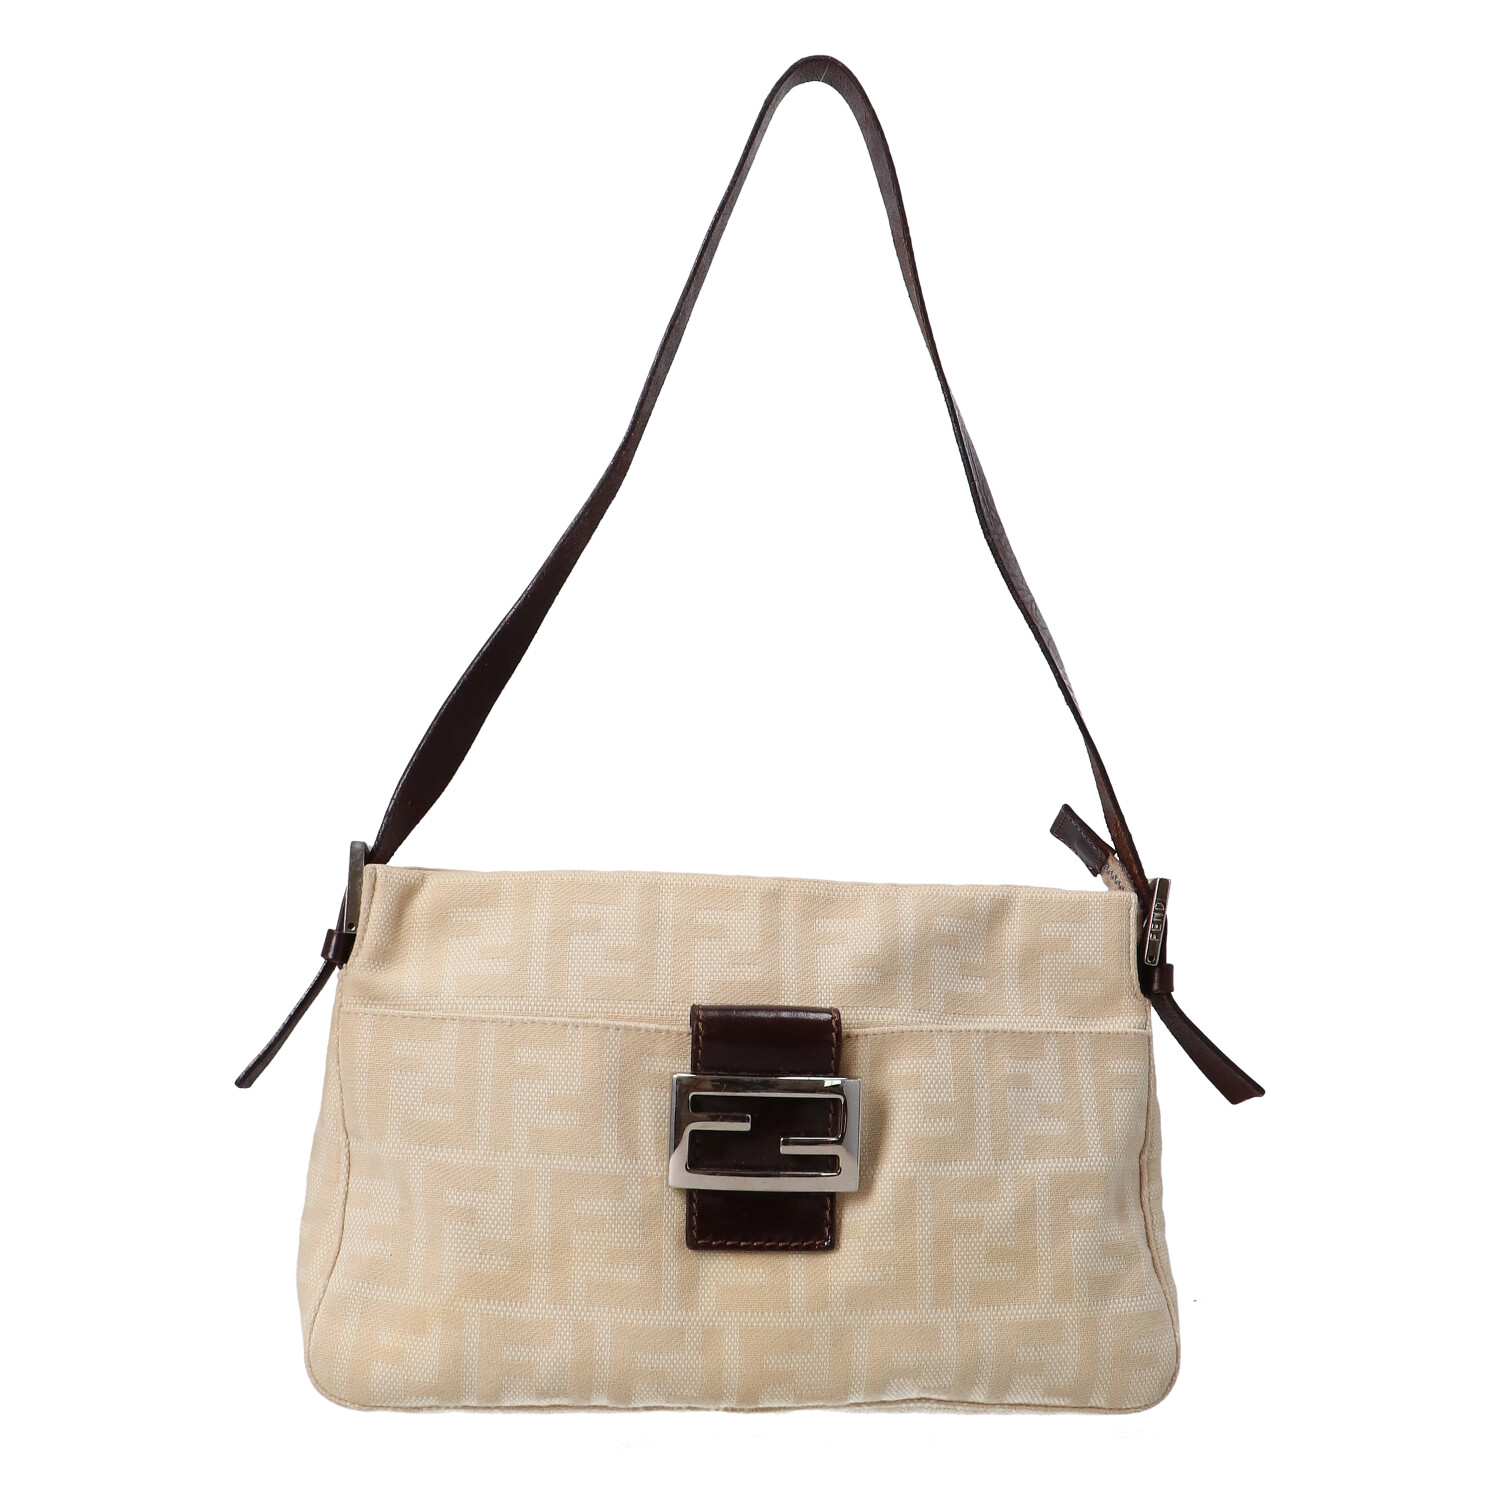 Fendi Beige Zucca Canvas Shoulder Bag